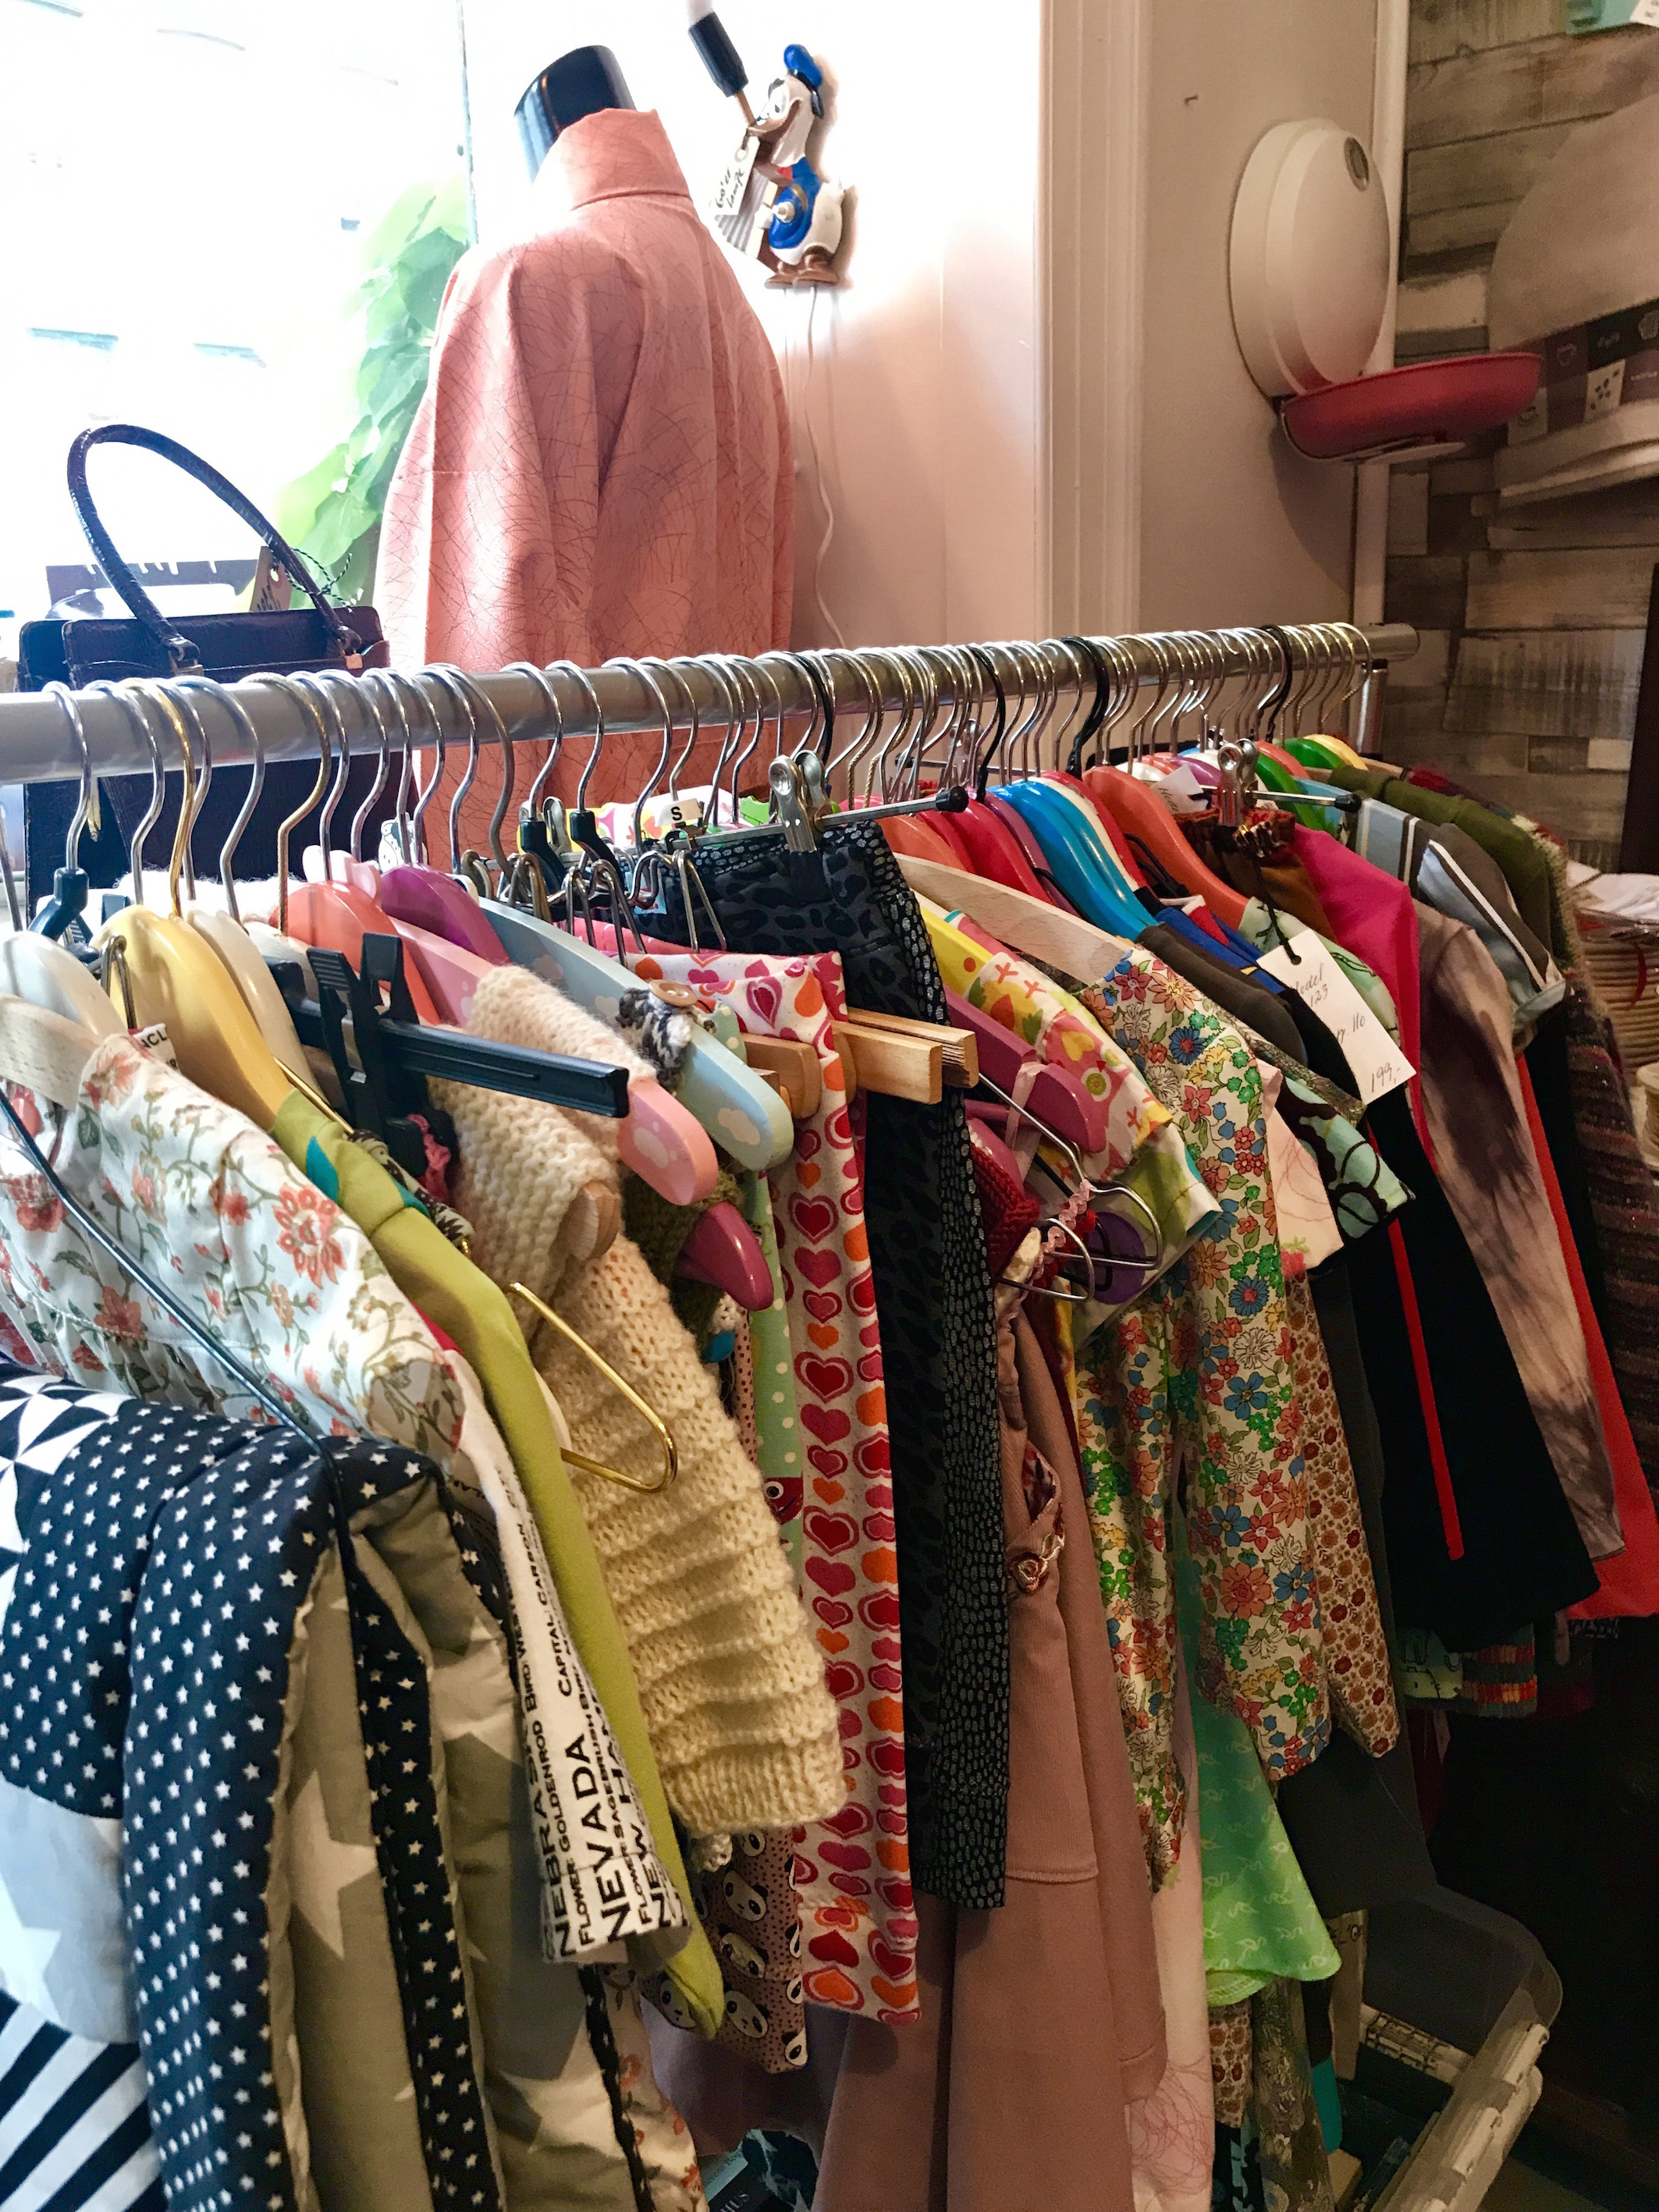 e67fa0eb9 Near the door is a rail hung with handmade children's clothing – smocks in  Liberty prints, little dresses and shirts in loud 60s fabric and tiny  sweaters, ...